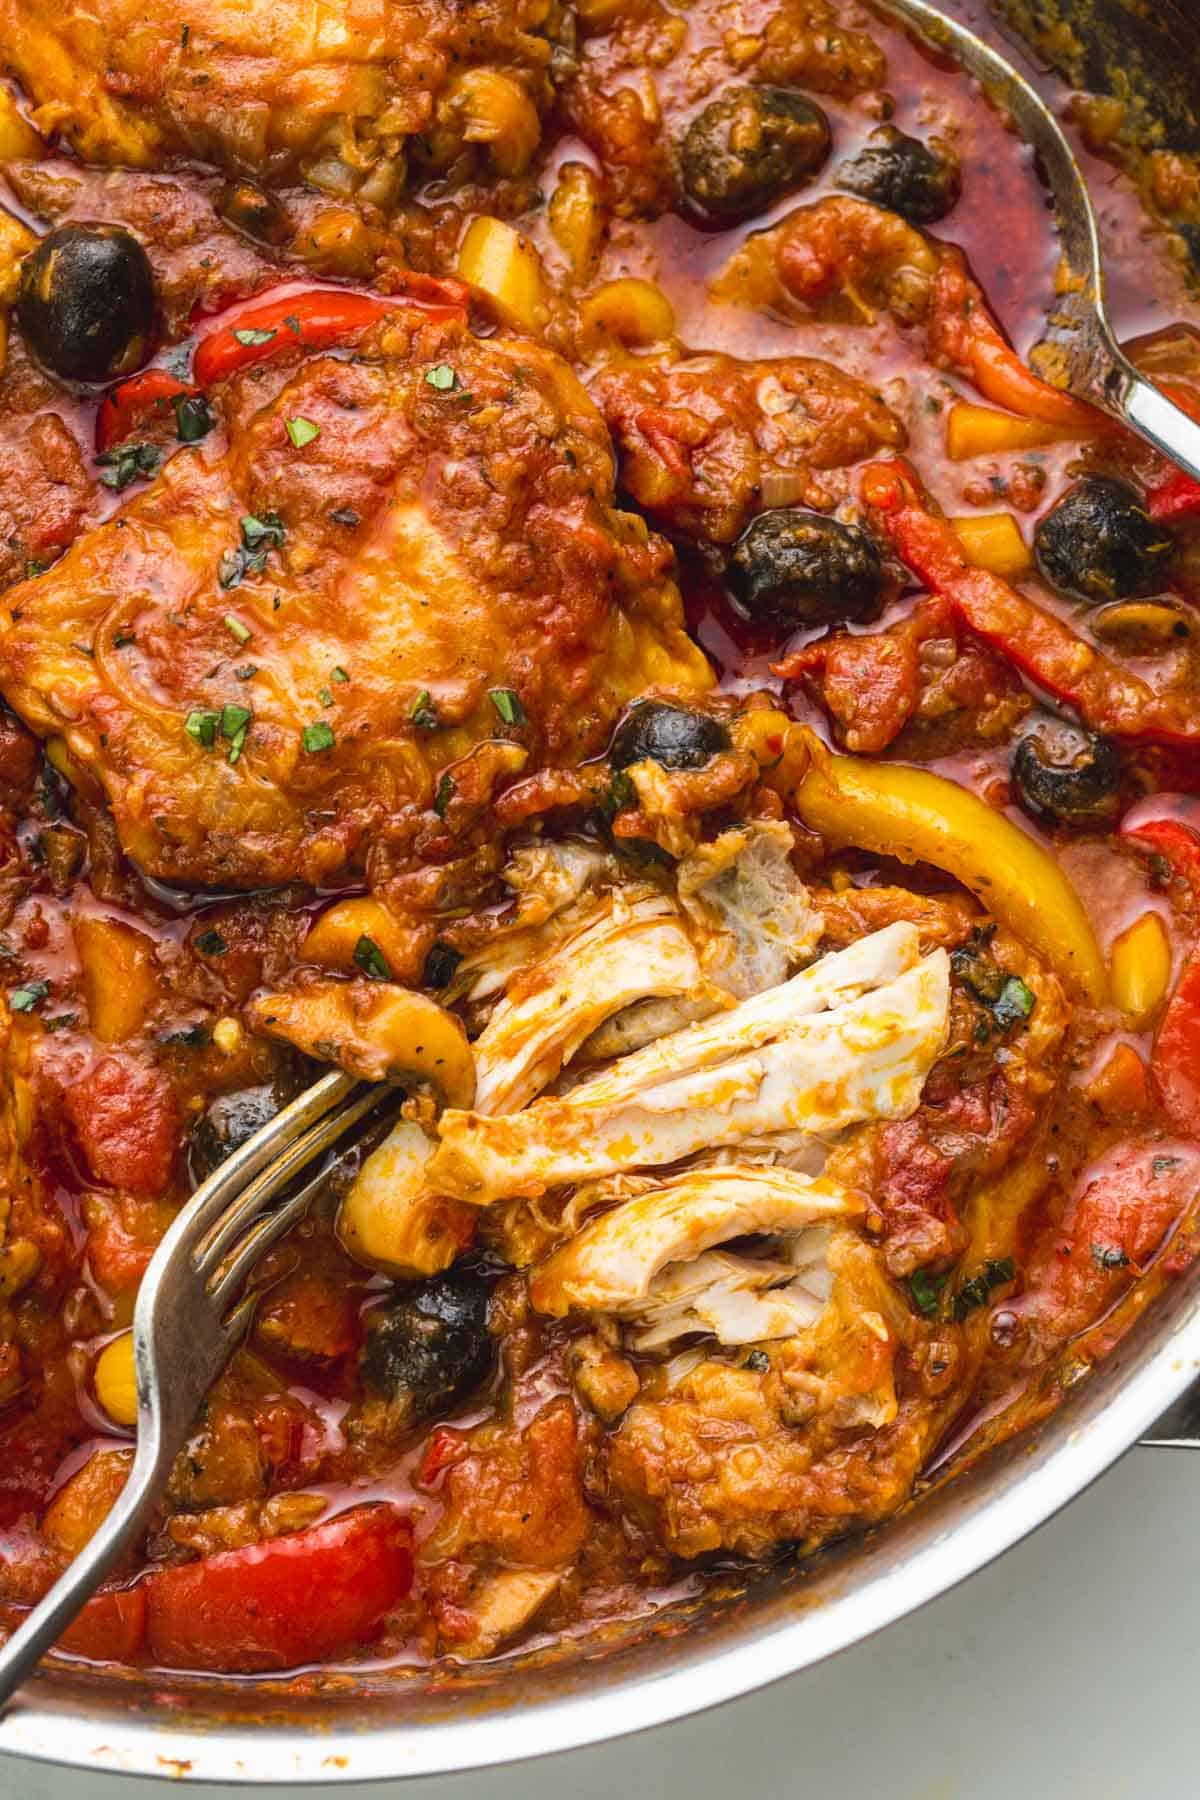 A close up of chicken cacciatore, and fall off the bone chicken to show the doneness of the chicken